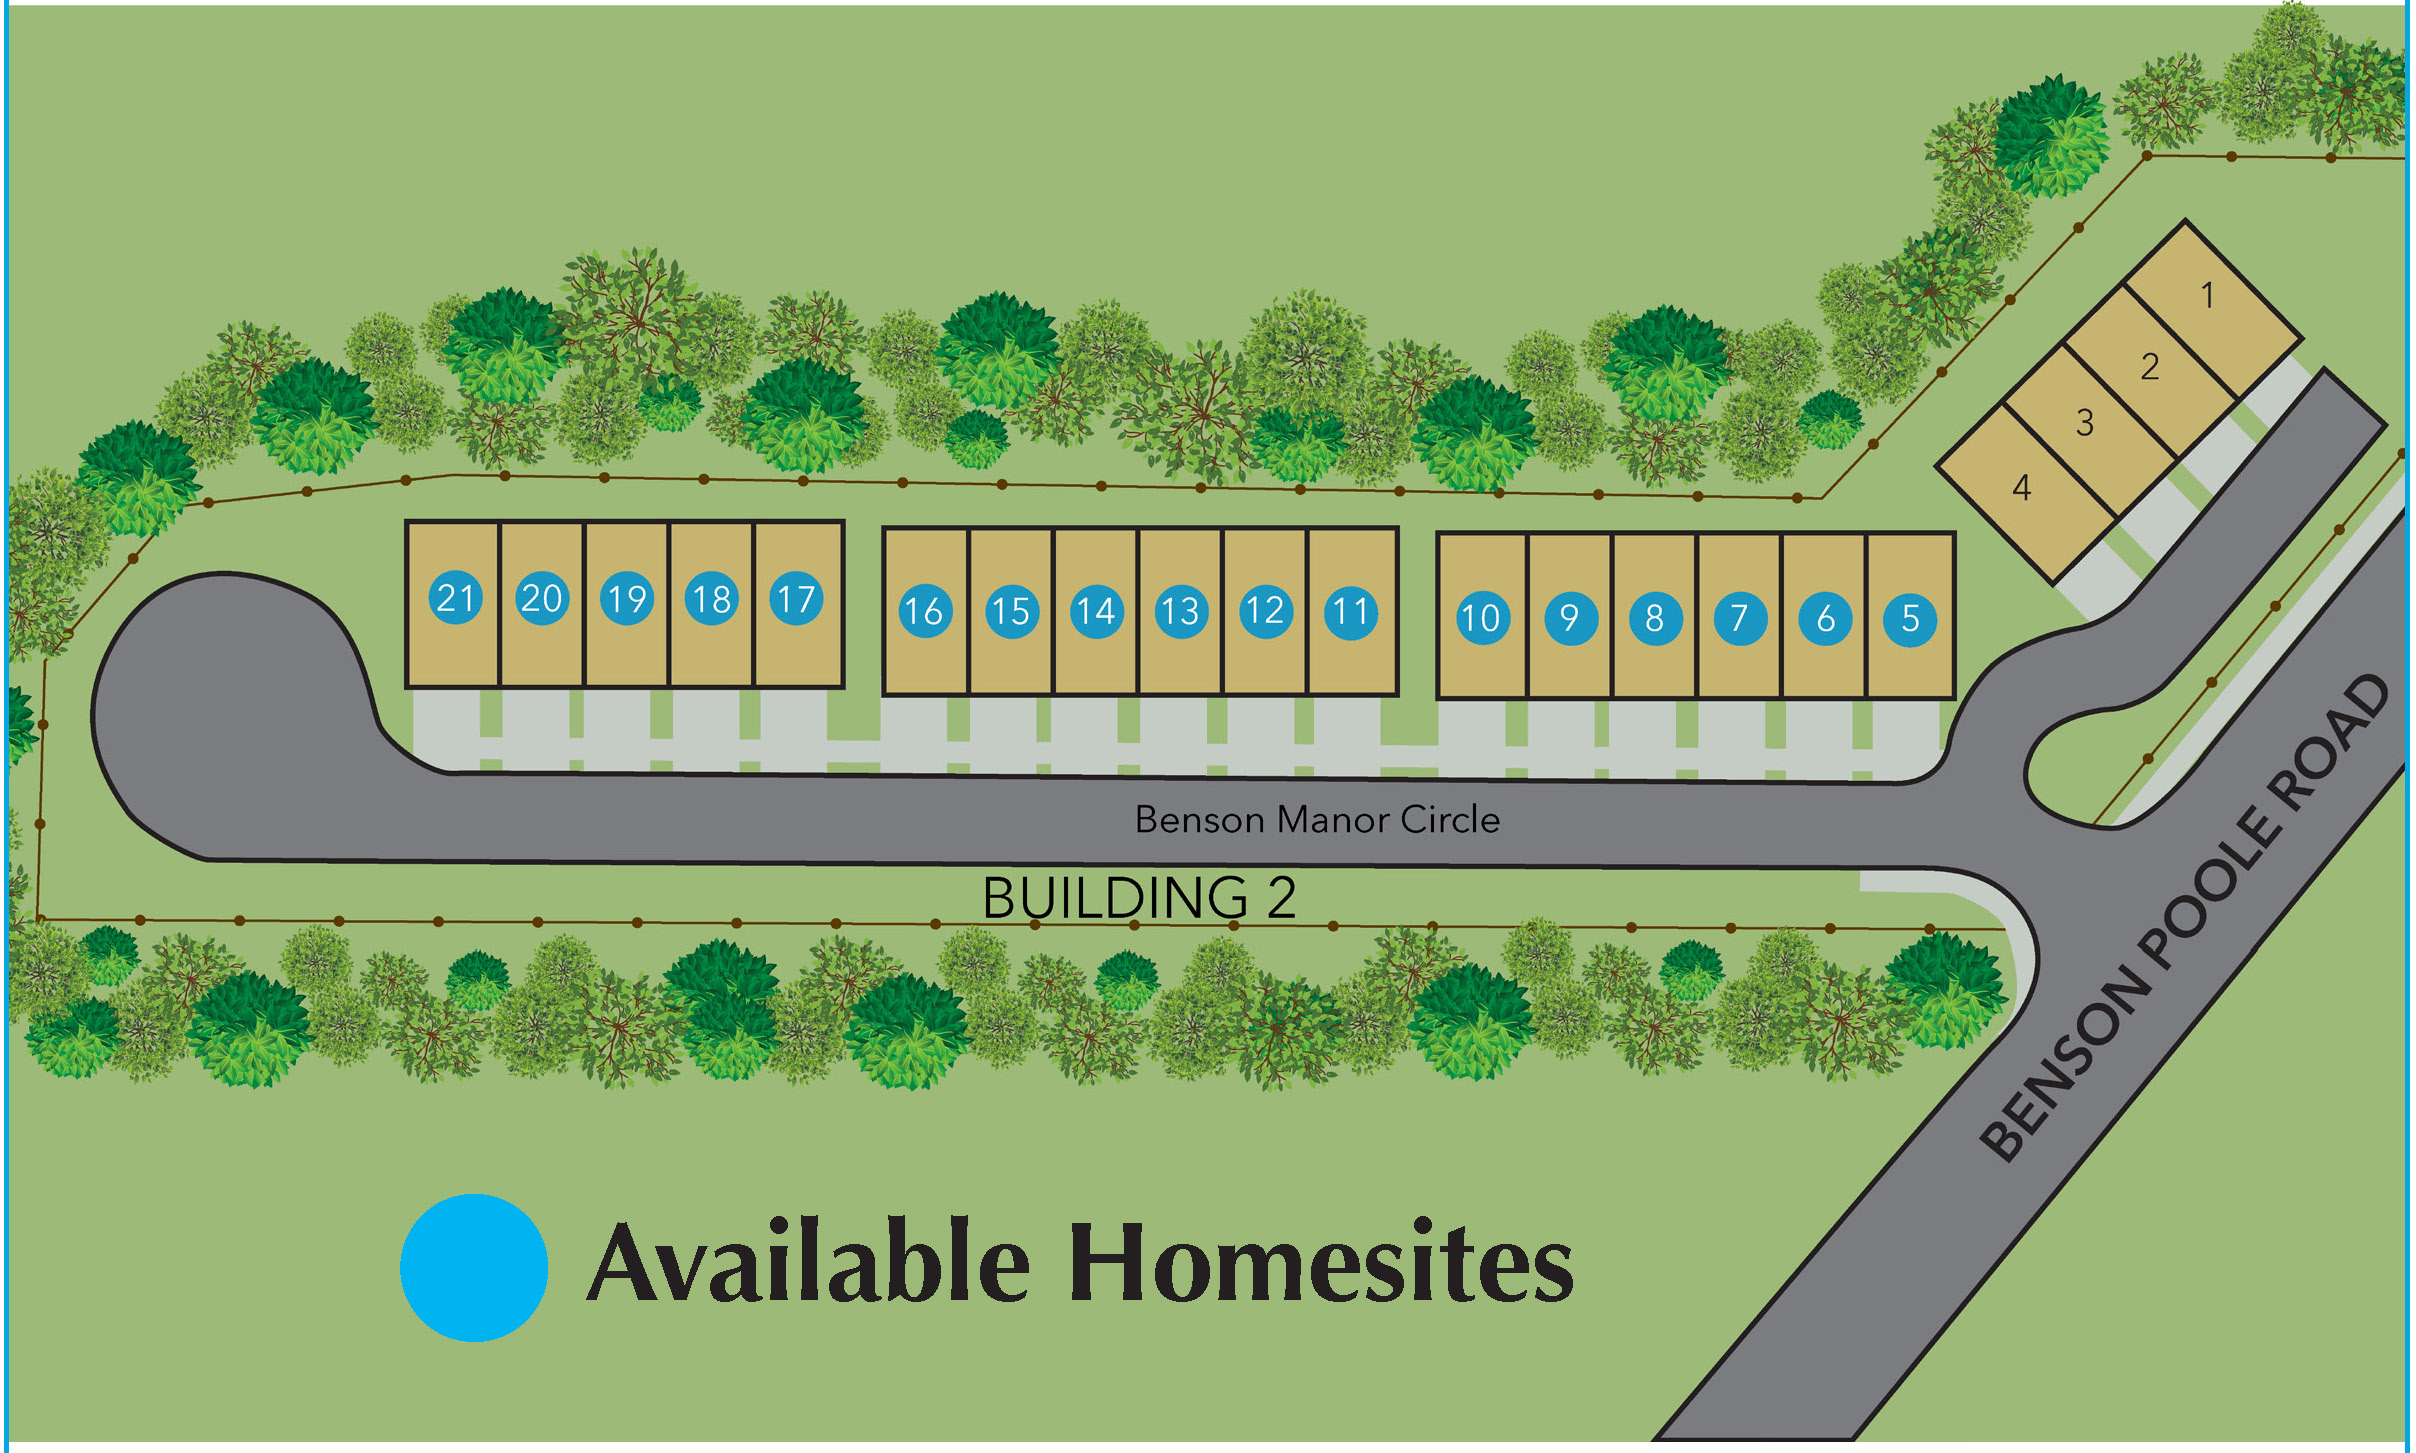 siteplanavailable-_wyndyhilltownhomes